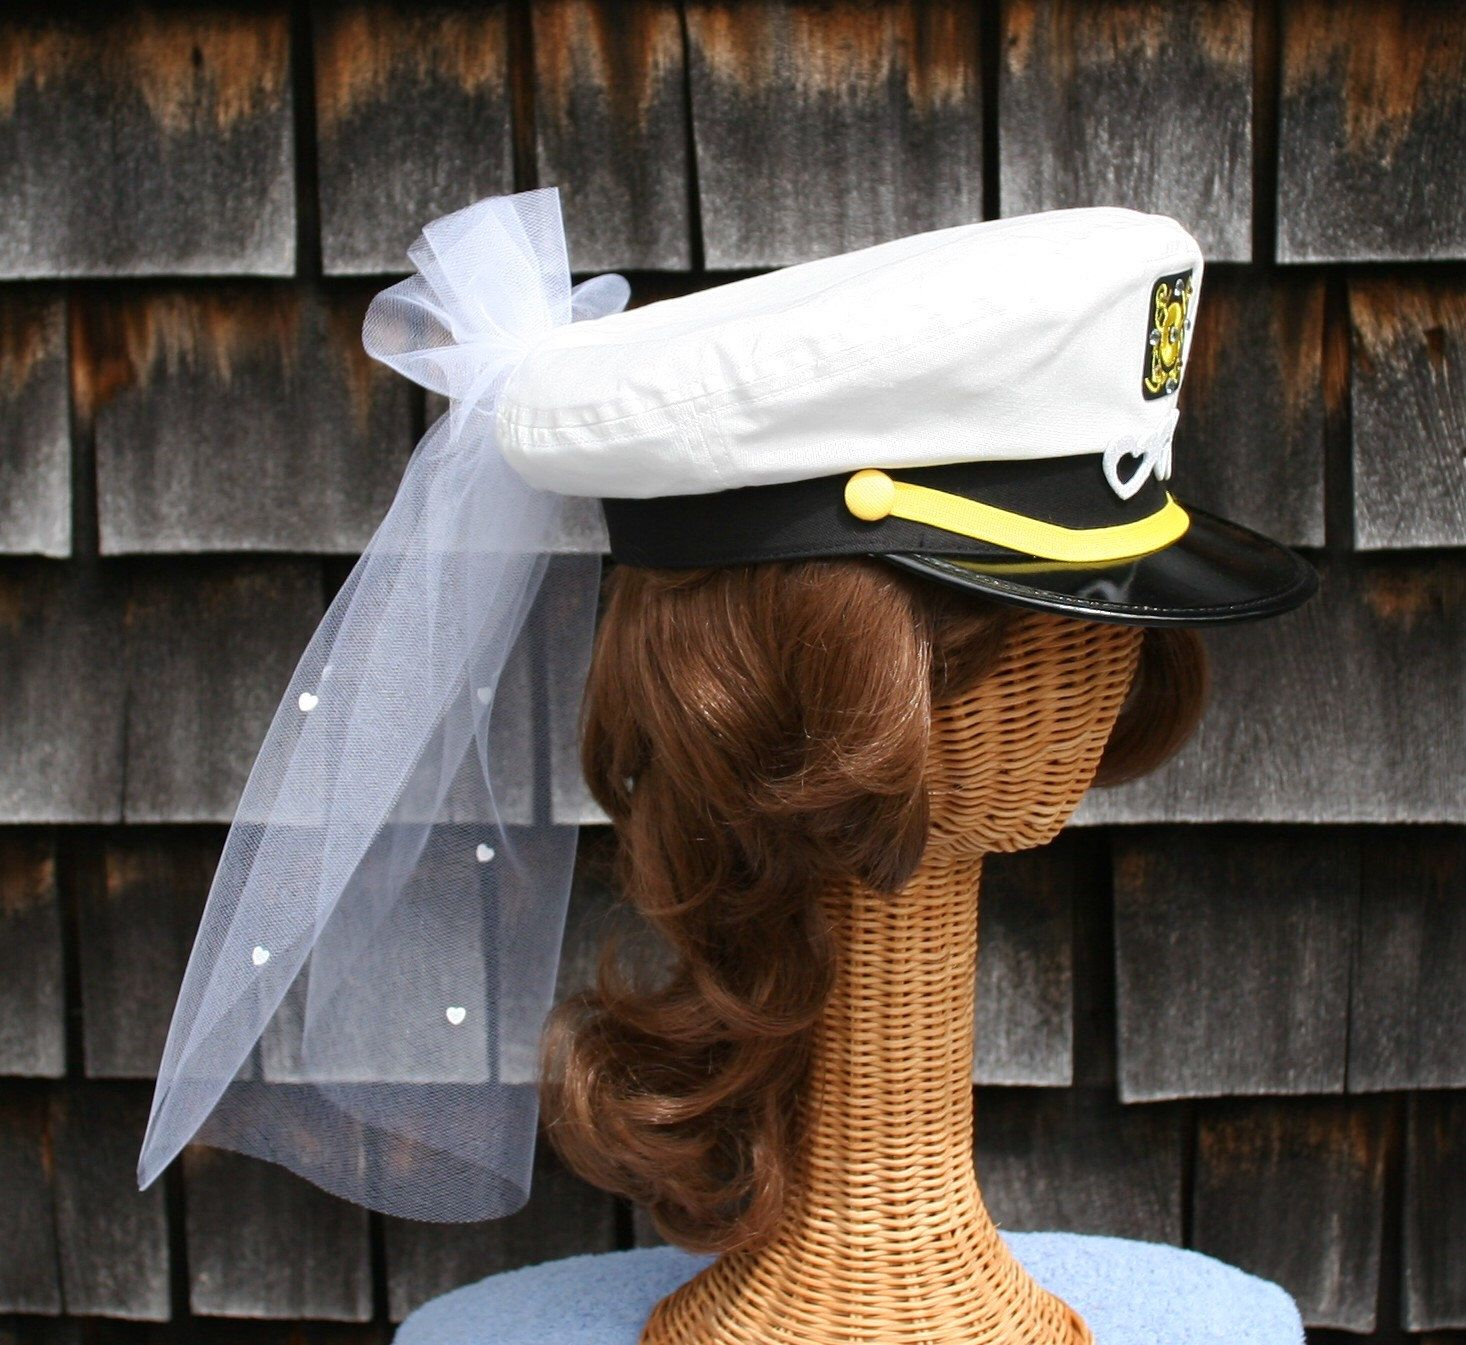 Bridal Captain S Hat With Veil Trimmed With Hearts Perfect For Nautical Bachelorette Pa Nautical Bachelorette Party Nautical Bachelorette Bachelorette Cruise